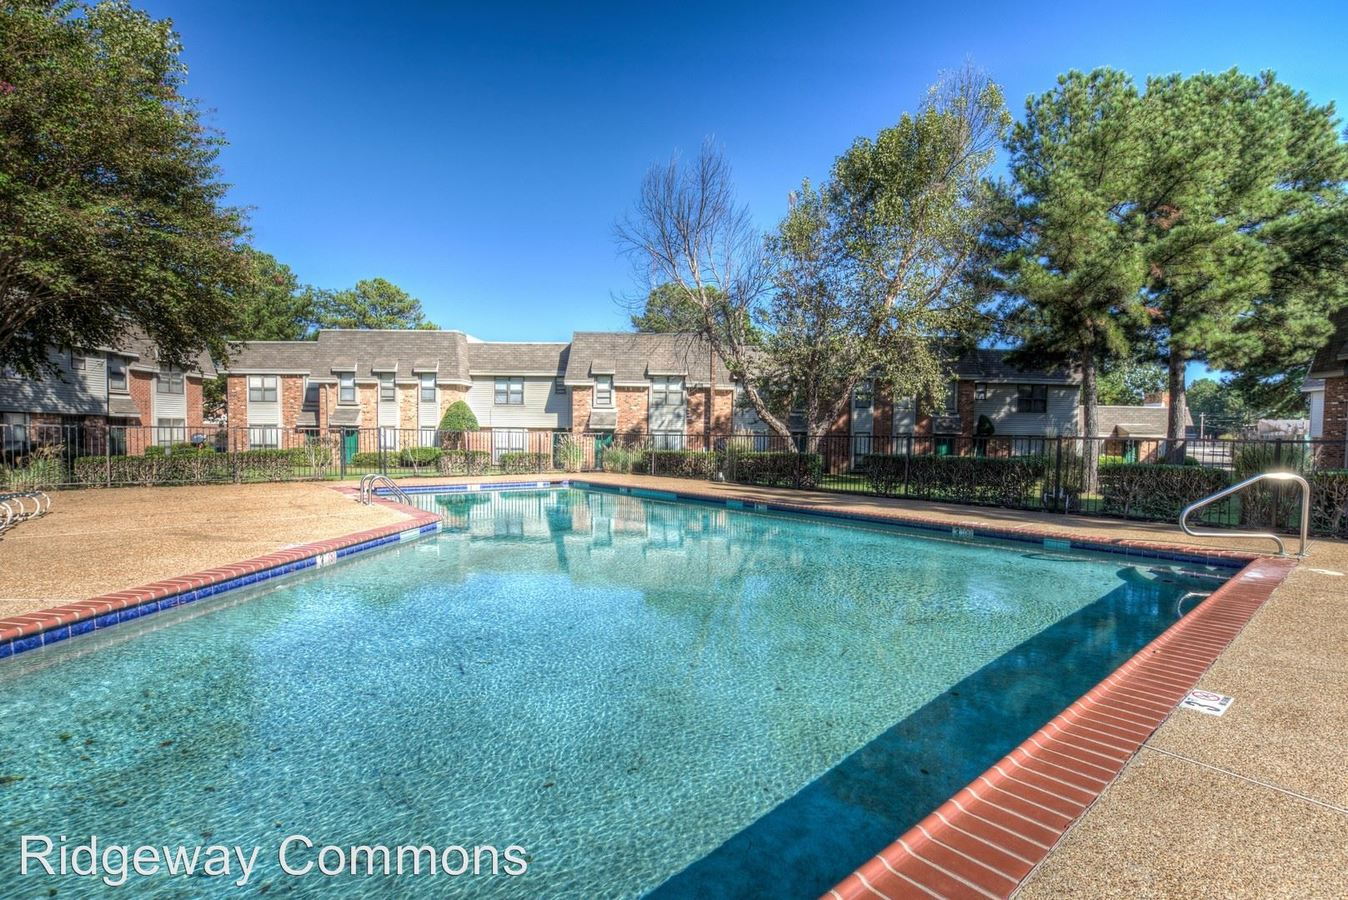 2 Bedrooms 1 Bathroom Apartment for rent at Ridgeway Commons Townhomes in Memphis, TN